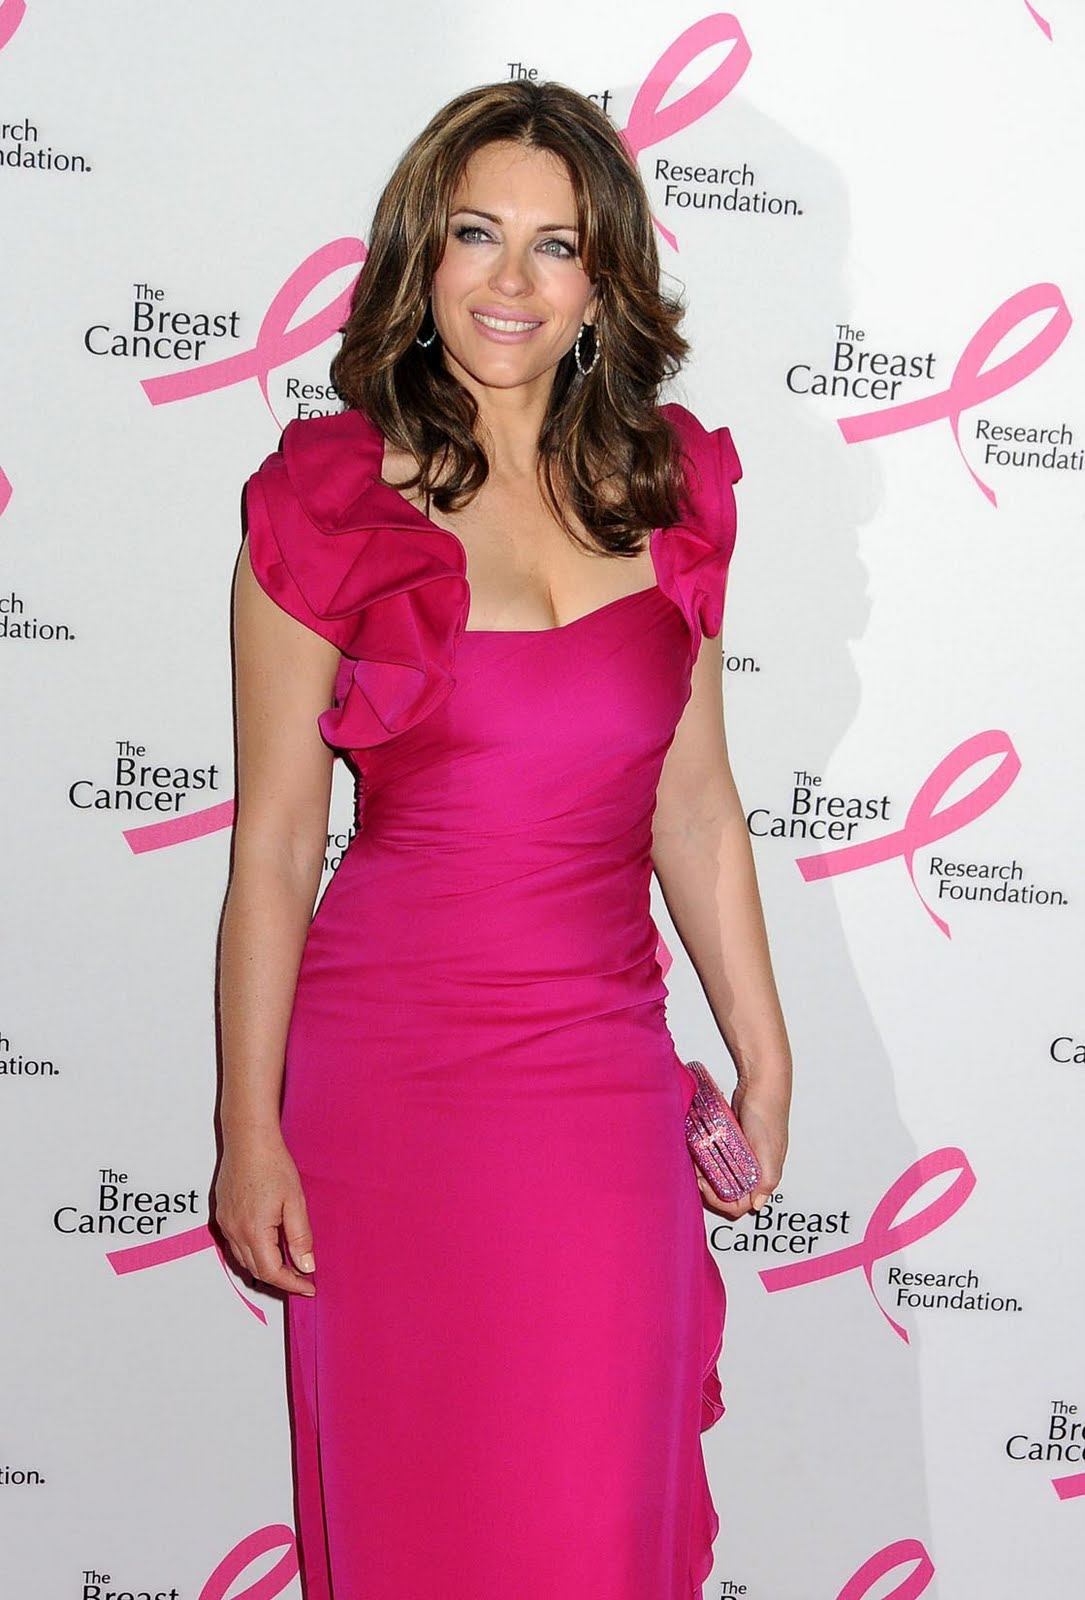 Bikini girl and fashion elizabeth hurley just gets better and better